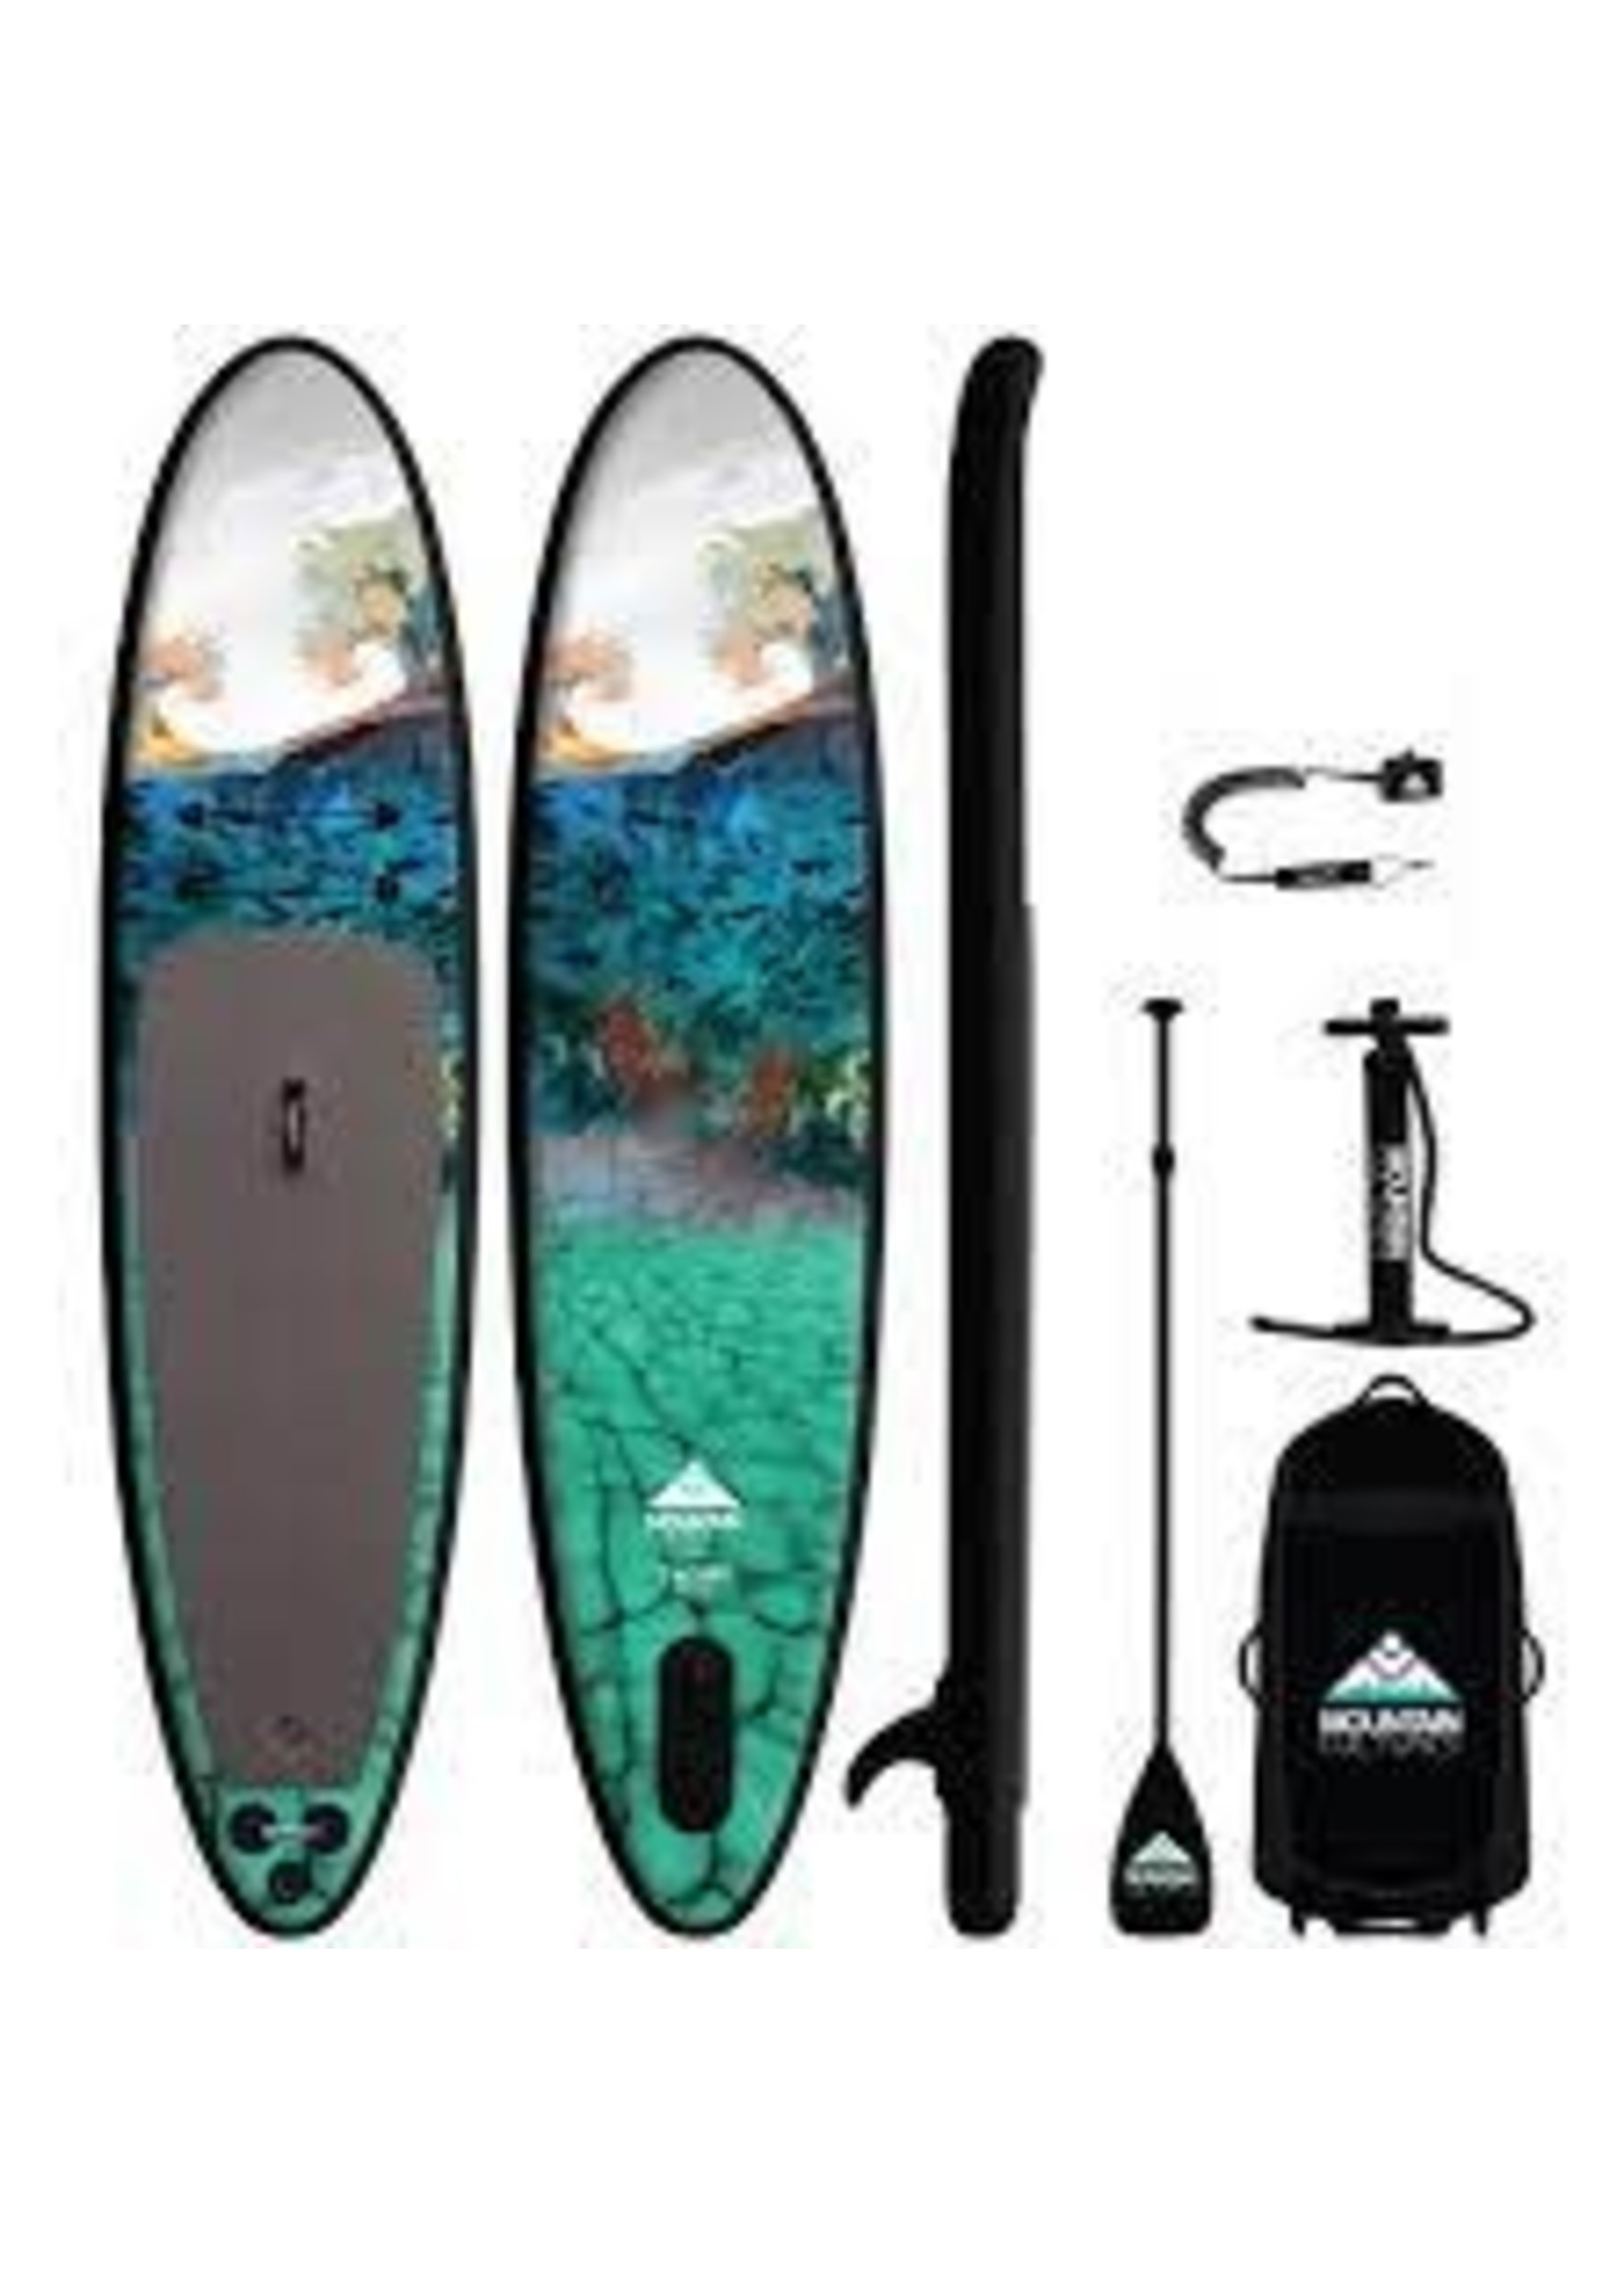 moutain culture Mountain Culture Stand up Paddle Board